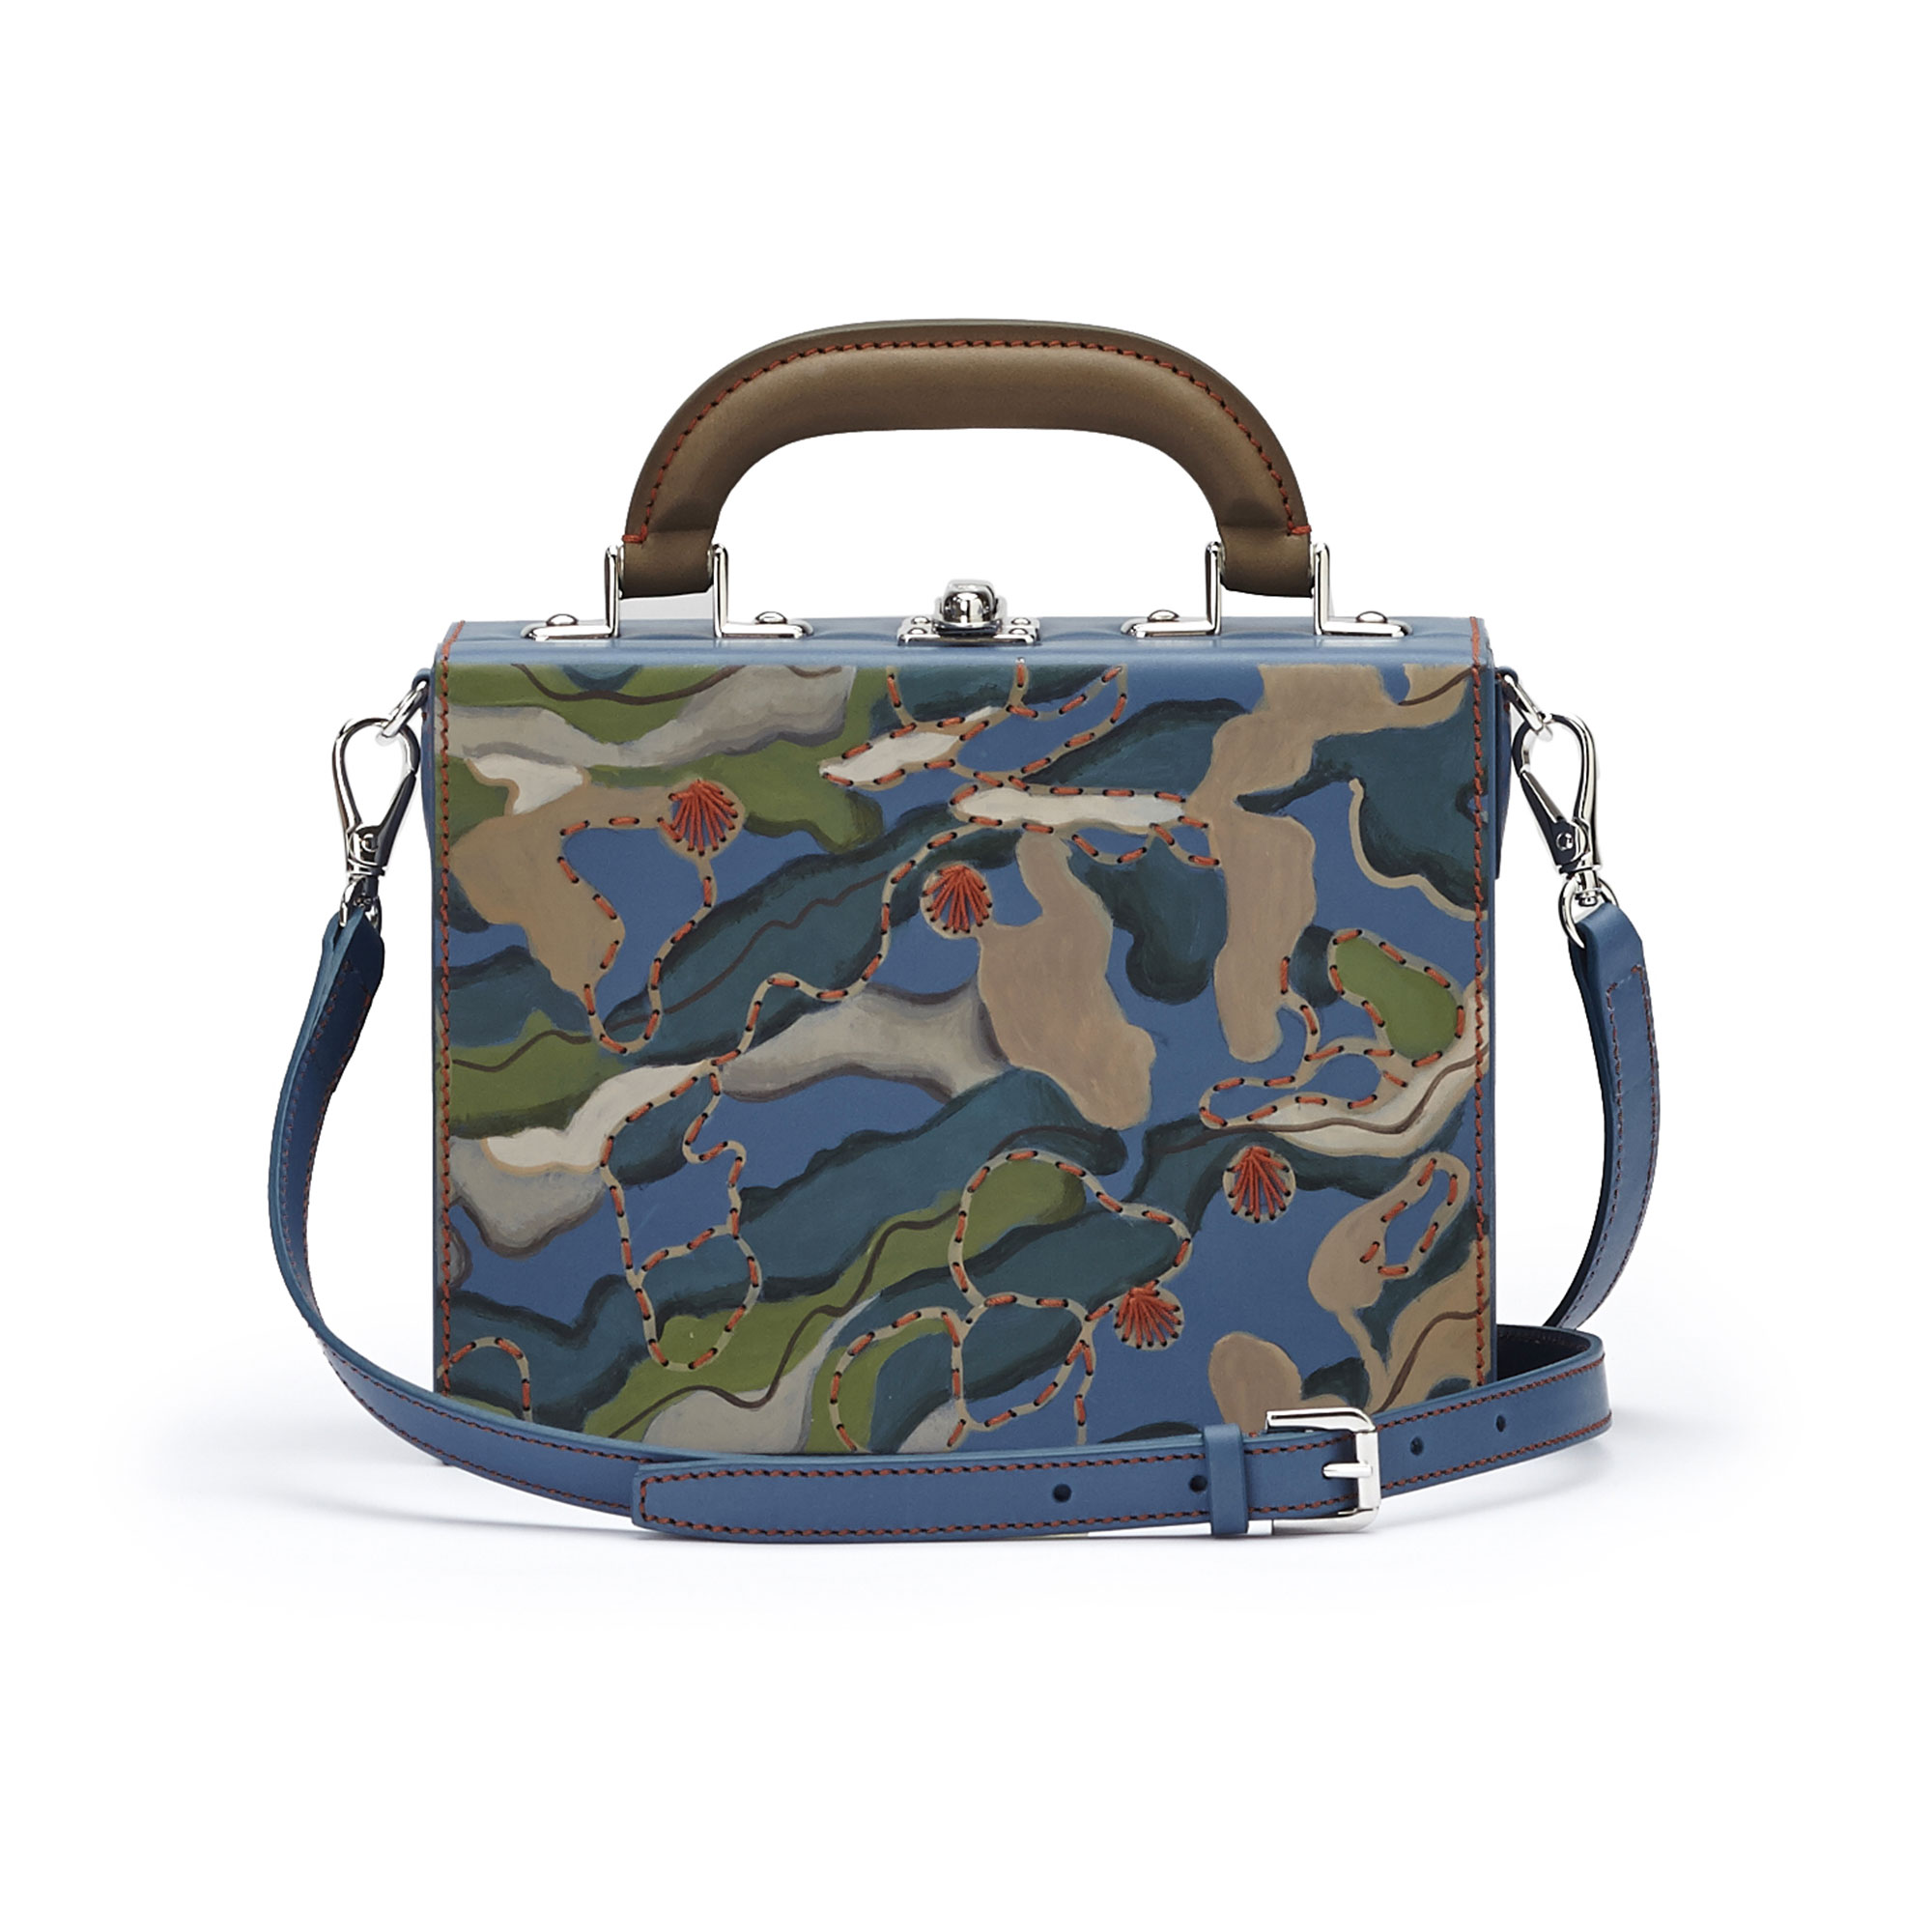 The hand-painted camouflage effect french calf Mini Squared Bertoncina bag by Bertoni 1949 03